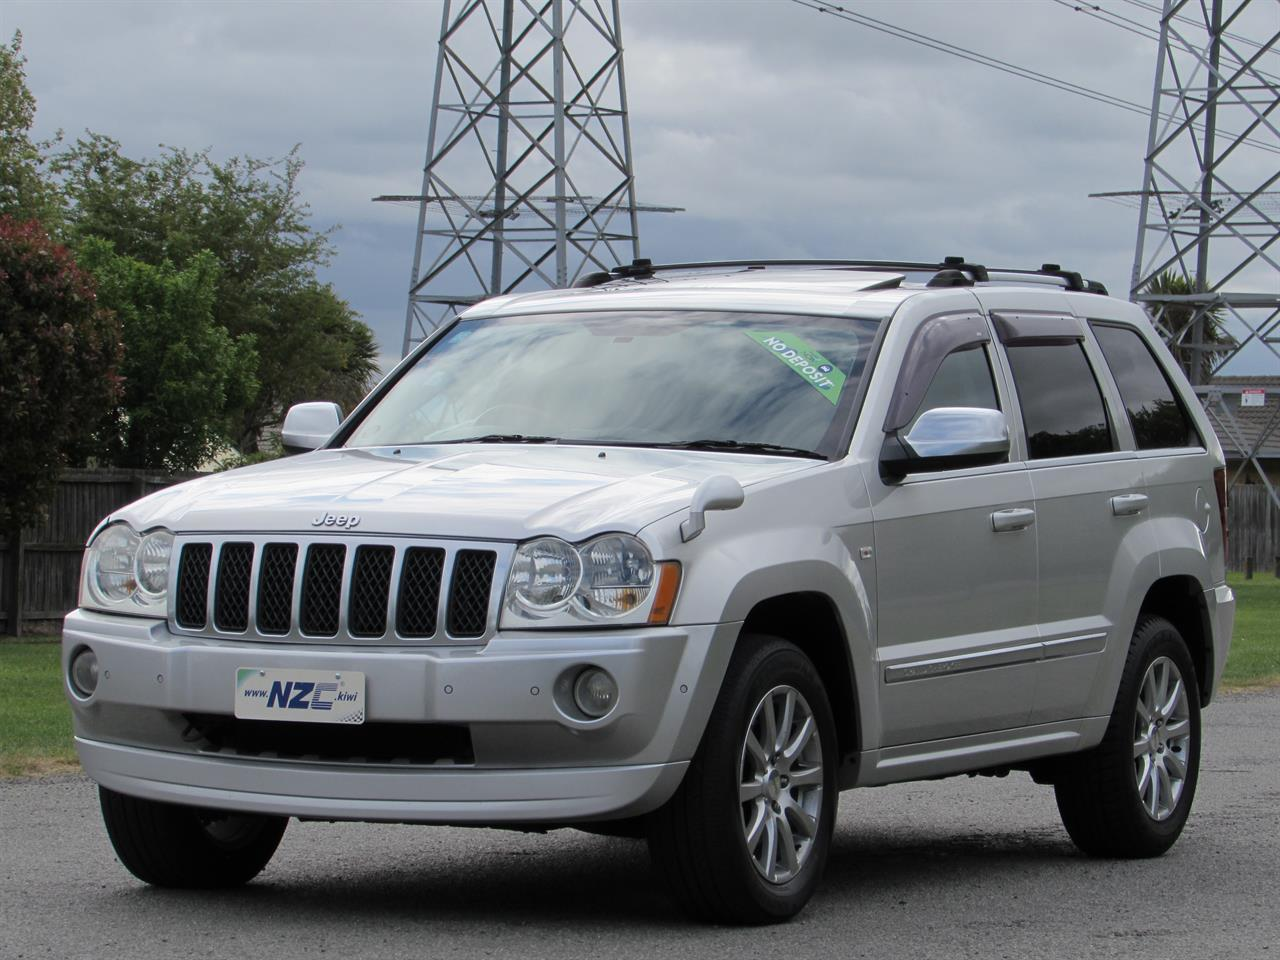 image-2, 2007 Jeep Grand Cherokee Limited 5.7L Hemi V8 at Christchurch